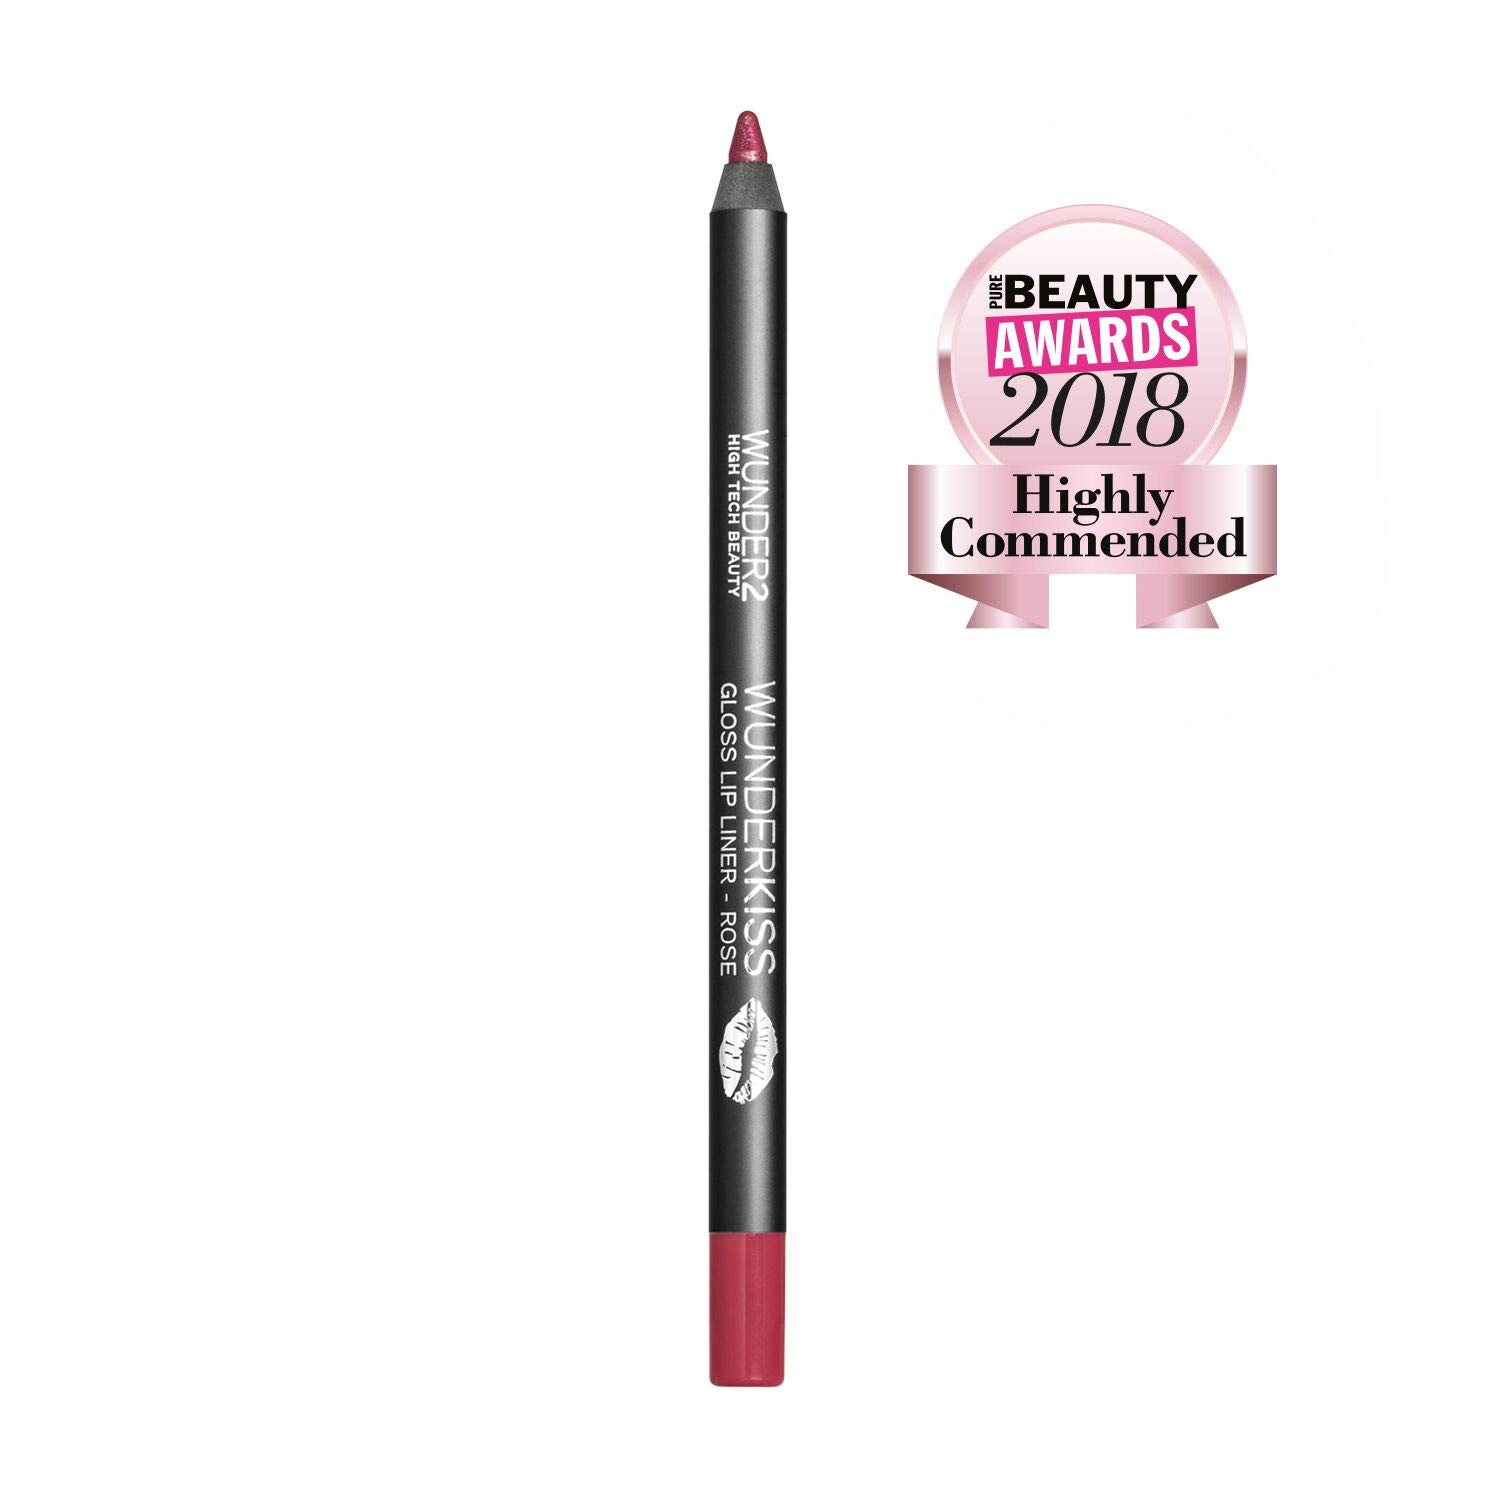 Wunder2 Wunderkiss Gloss Berry Lip Liner - Long Lasting Lip Pencil For Perfect Lip Gloss Look